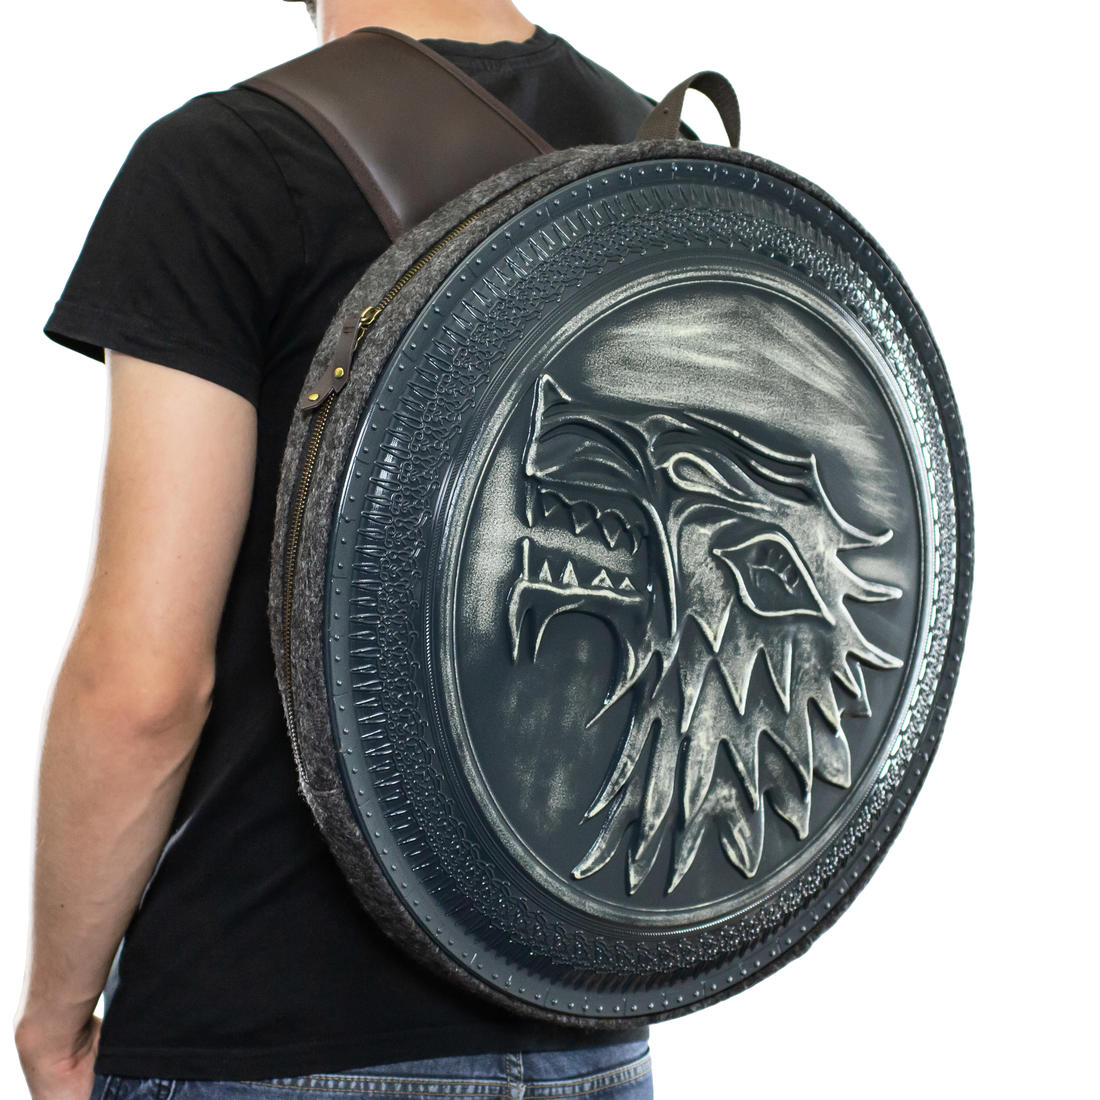 The Best Stark Game Of Thrones Shield Background